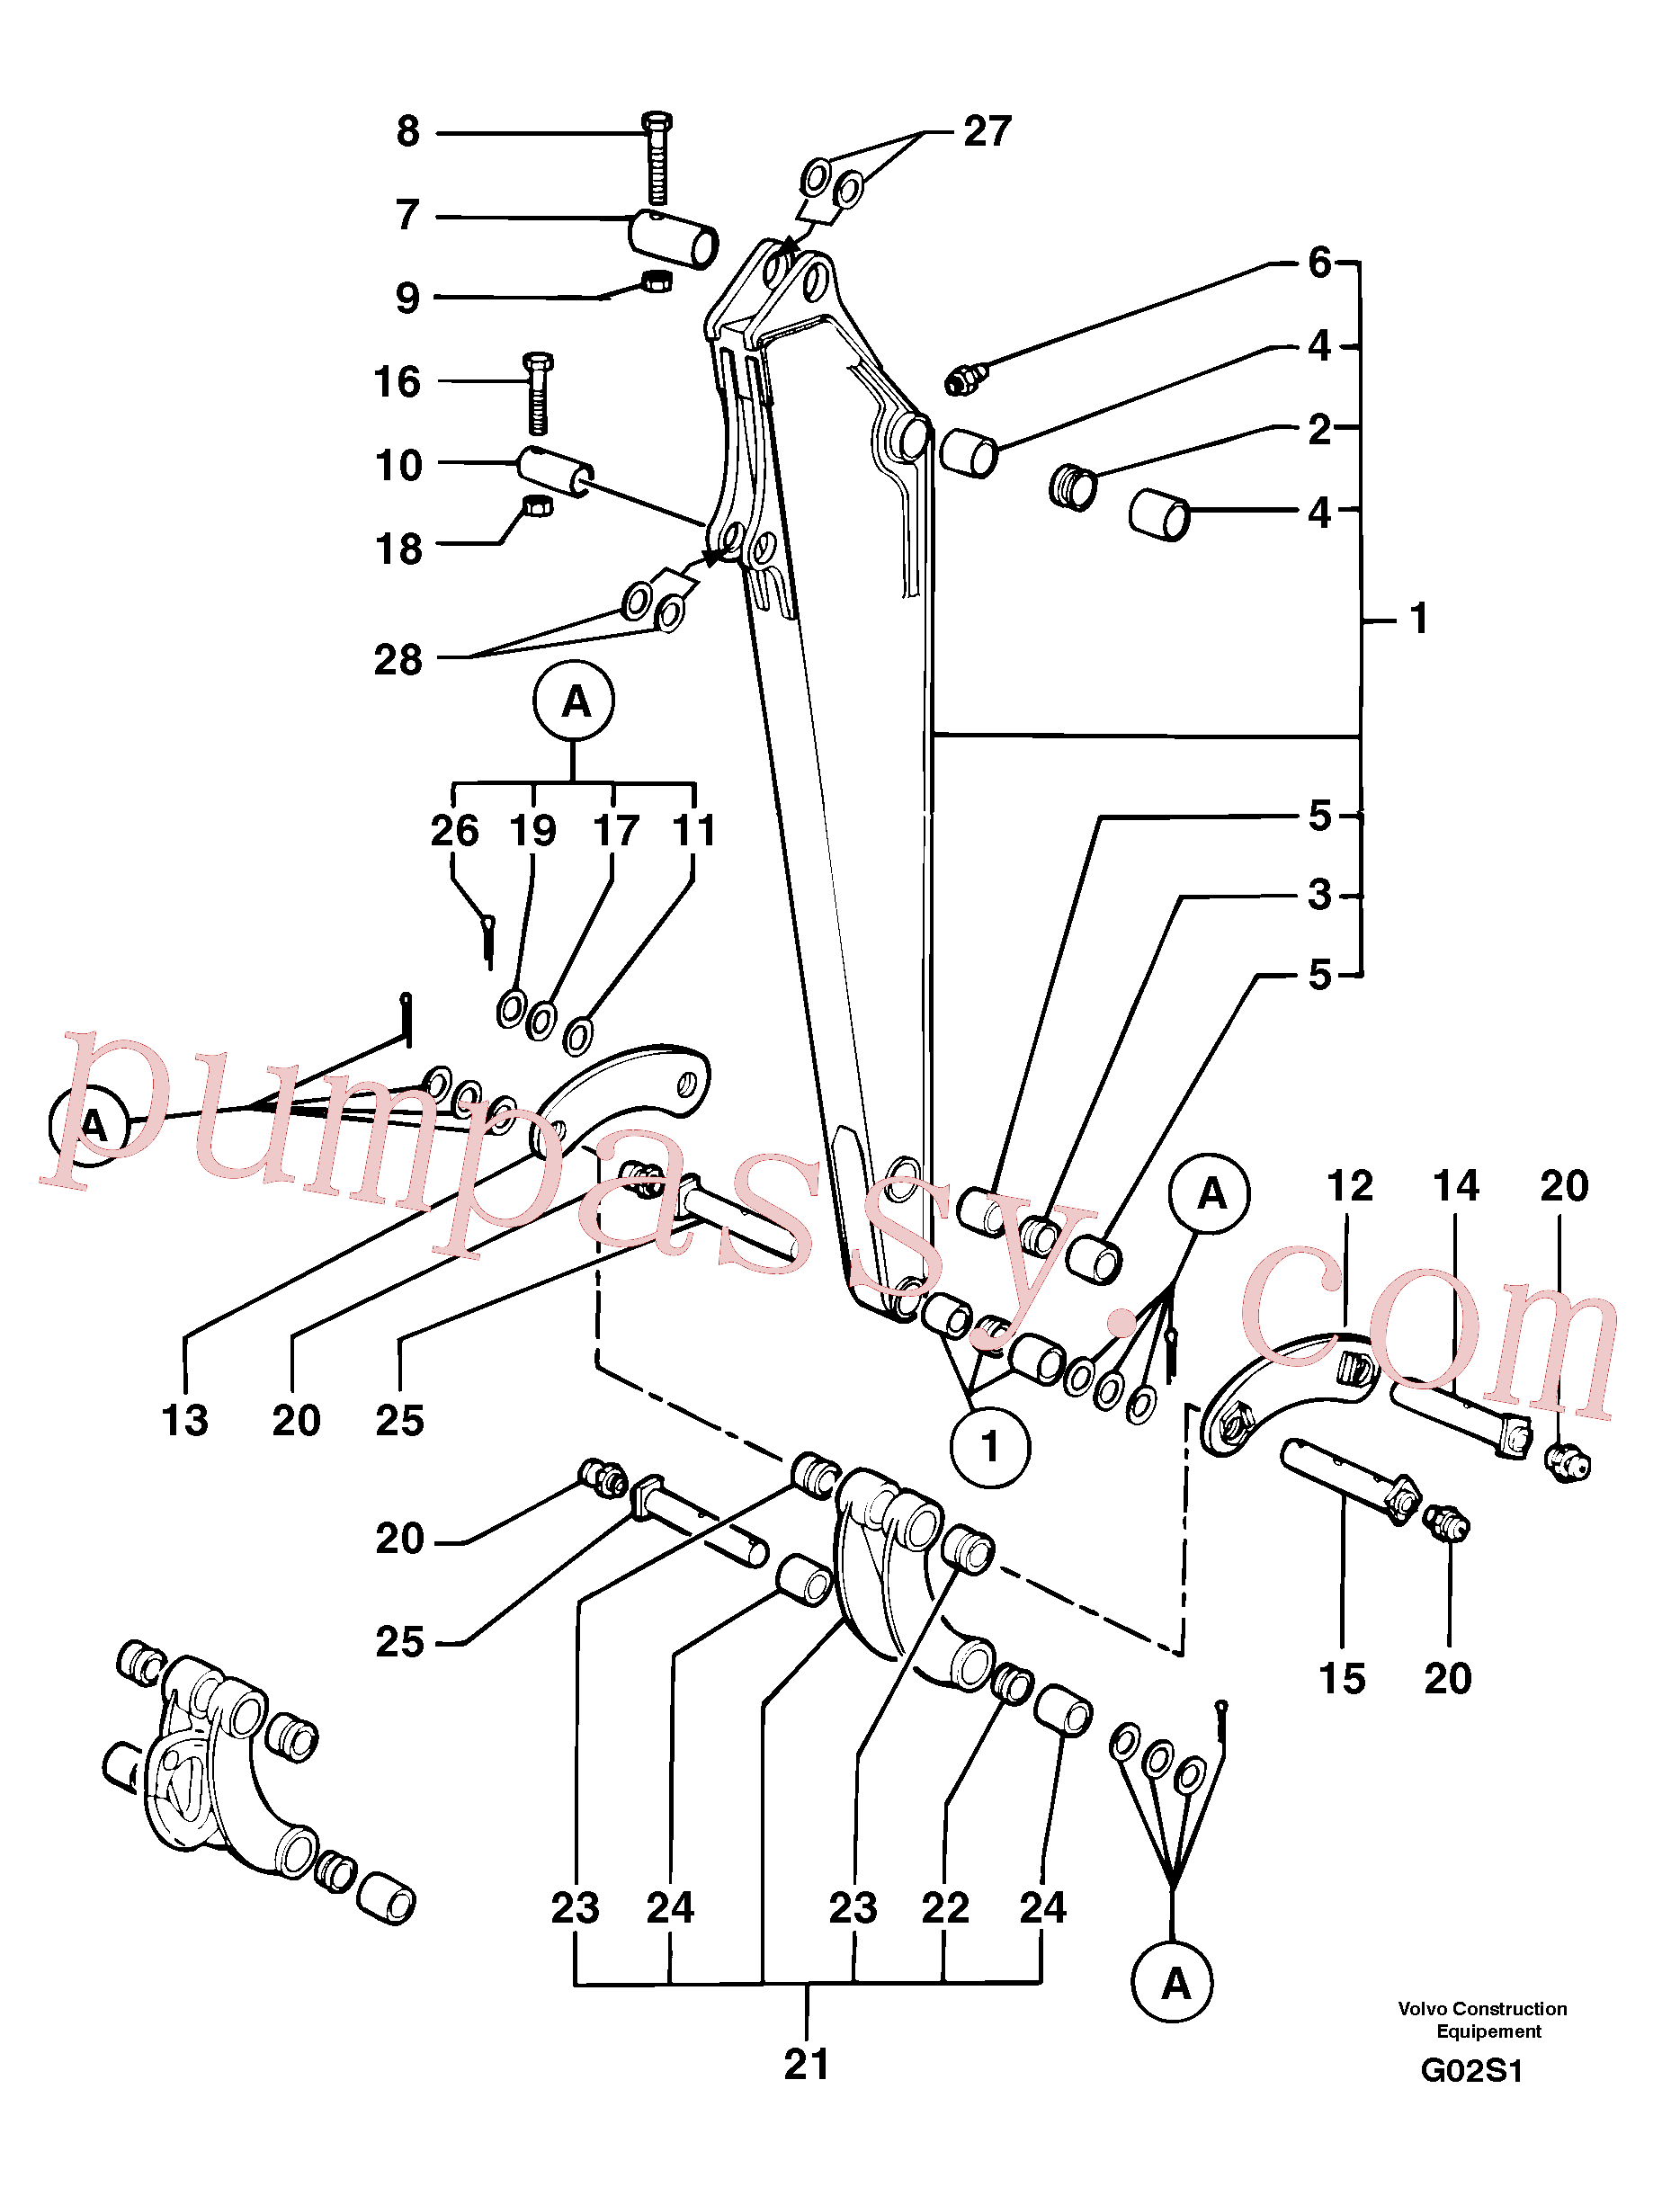 PJ3750015 for Volvo Dipper arm(G02S1 assembly)